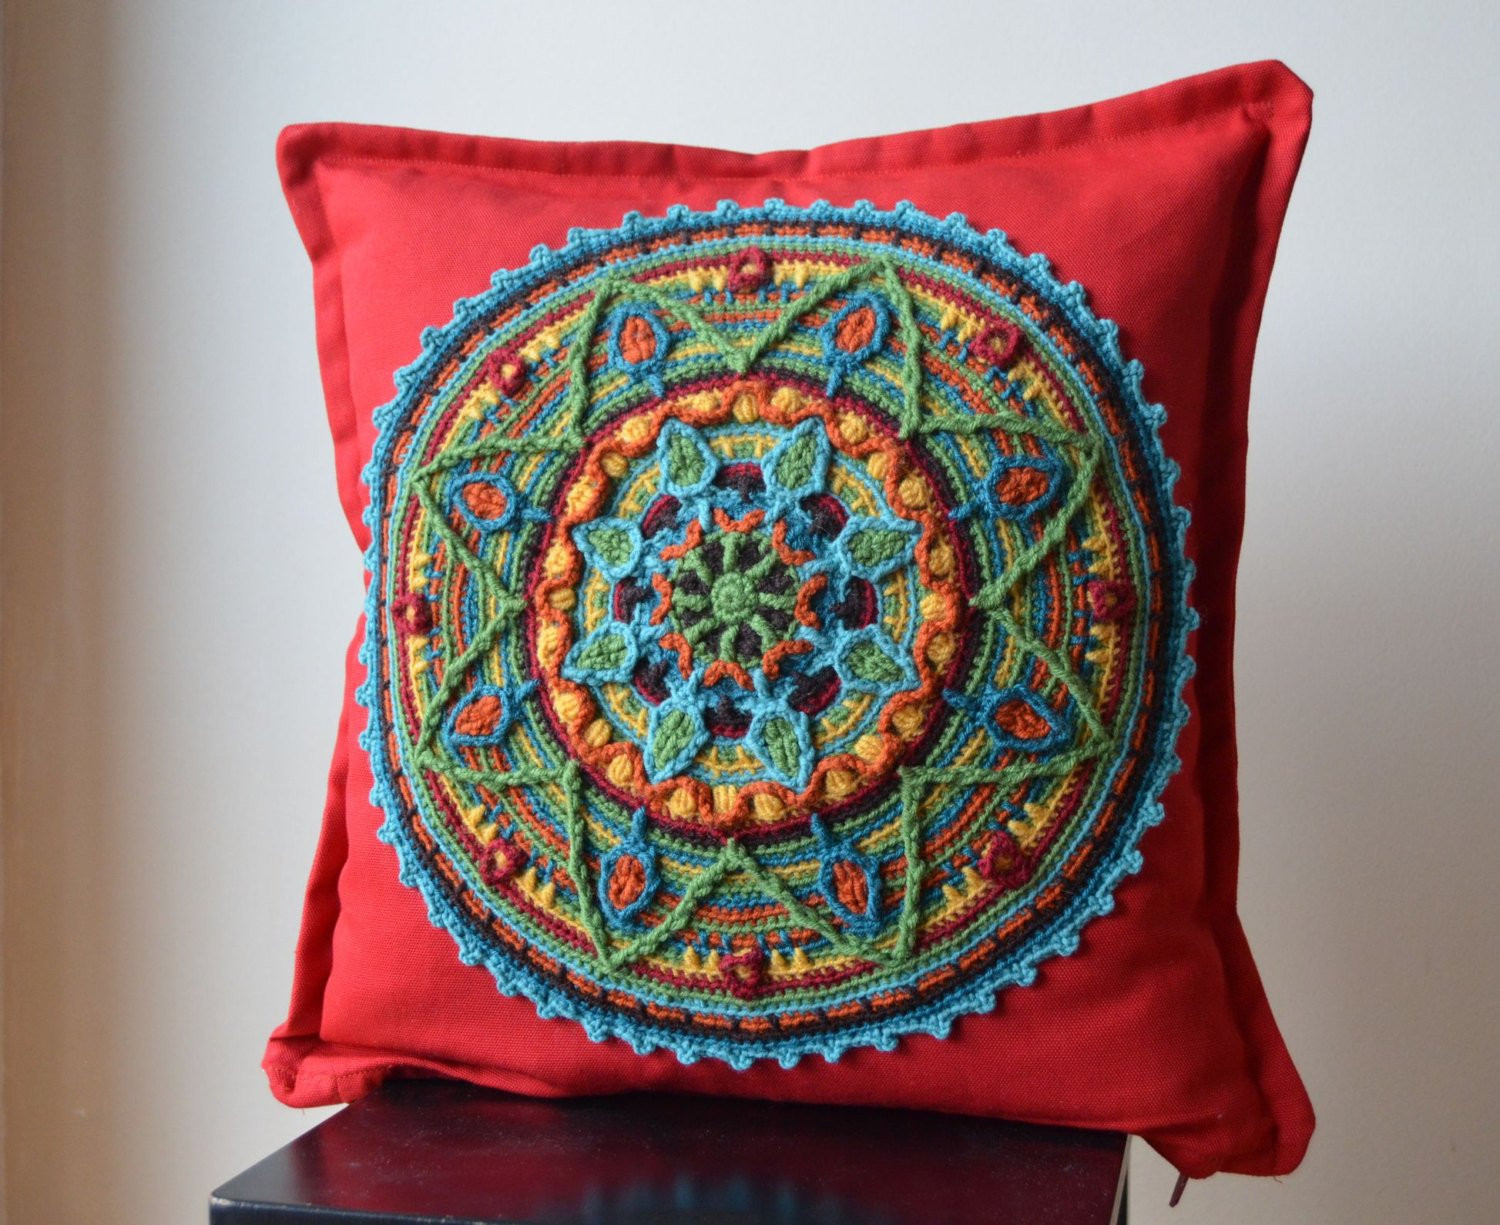 Crochet Pillow Cover Beautiful Crochet Mandala Red Pillow Cover by Lillabjorncrochet On Etsy Of Amazing 50 Pics Crochet Pillow Cover